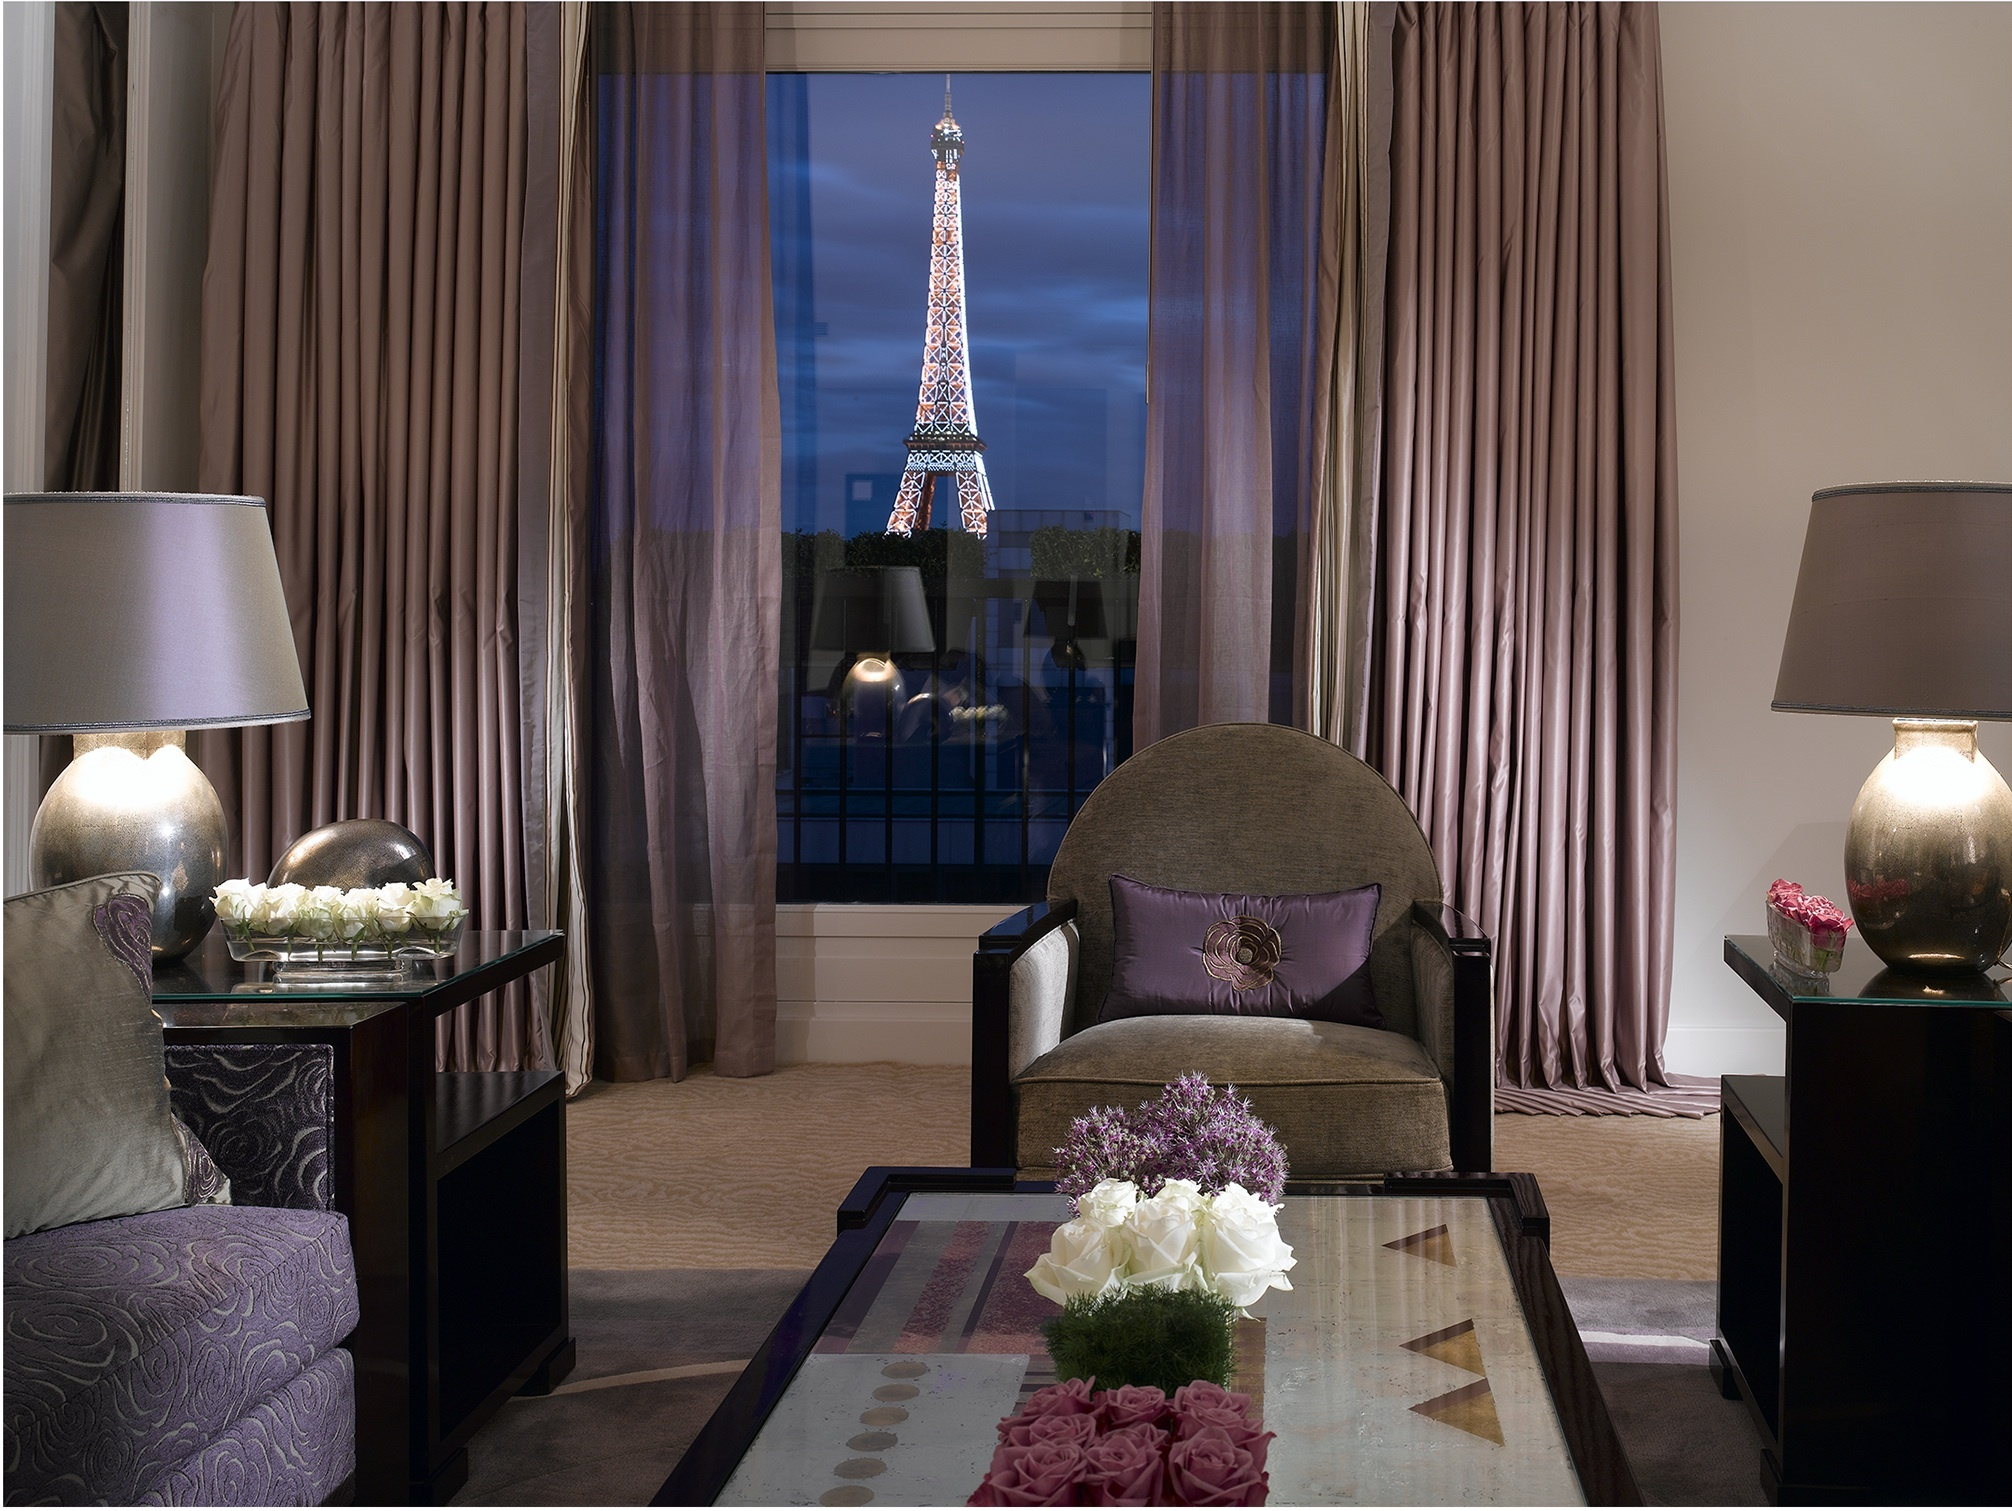 The best hotel rooms in paris best hotels in paris for Hotel design paris 3eme